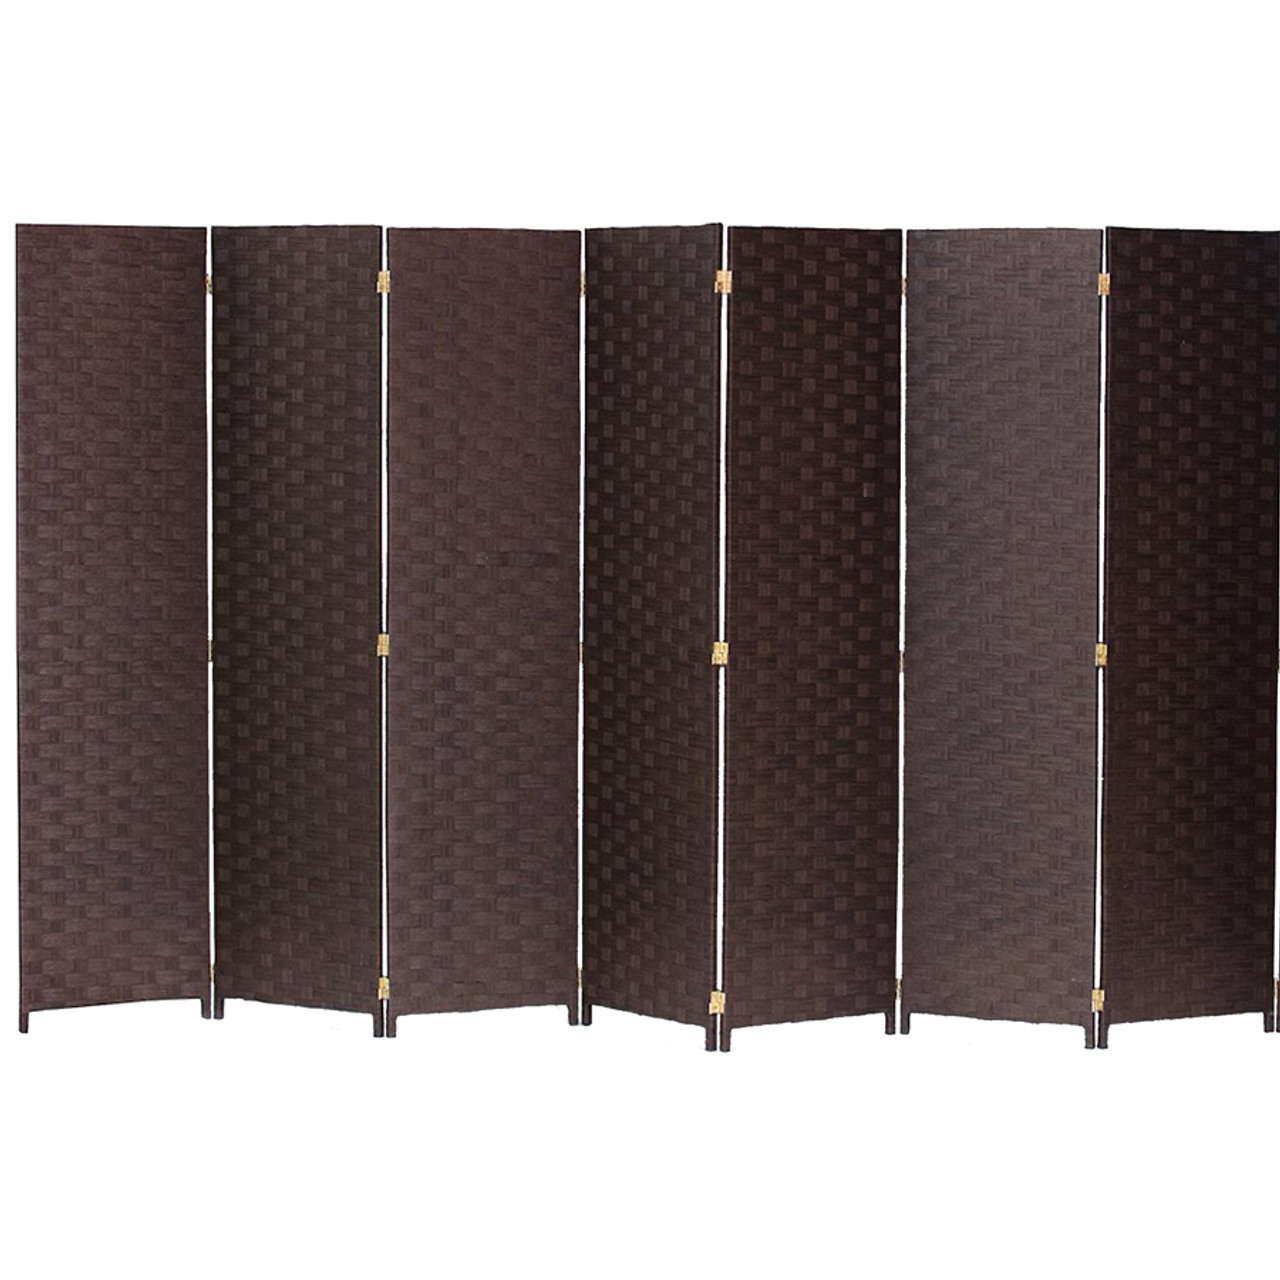 Bamboo Woven Panel Room Divider, Privacy Partition Screen, 7 Panels in USA, California, New York, New York City, Los Angeles, San Francisco, Pennsylvania, Washington DC, Virginia, MD